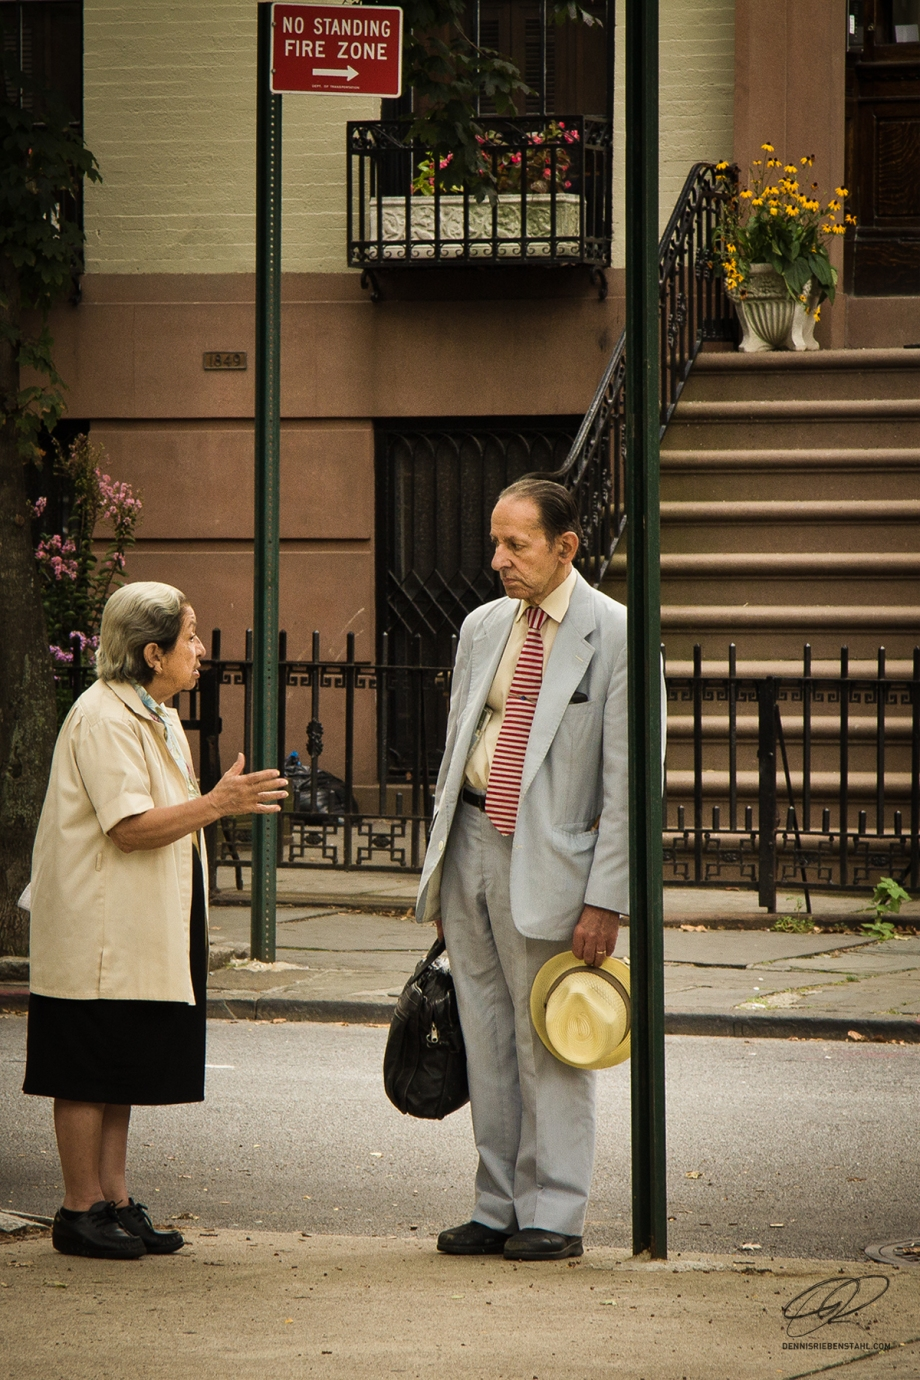 Two Brooklyn neighbours having a chat.